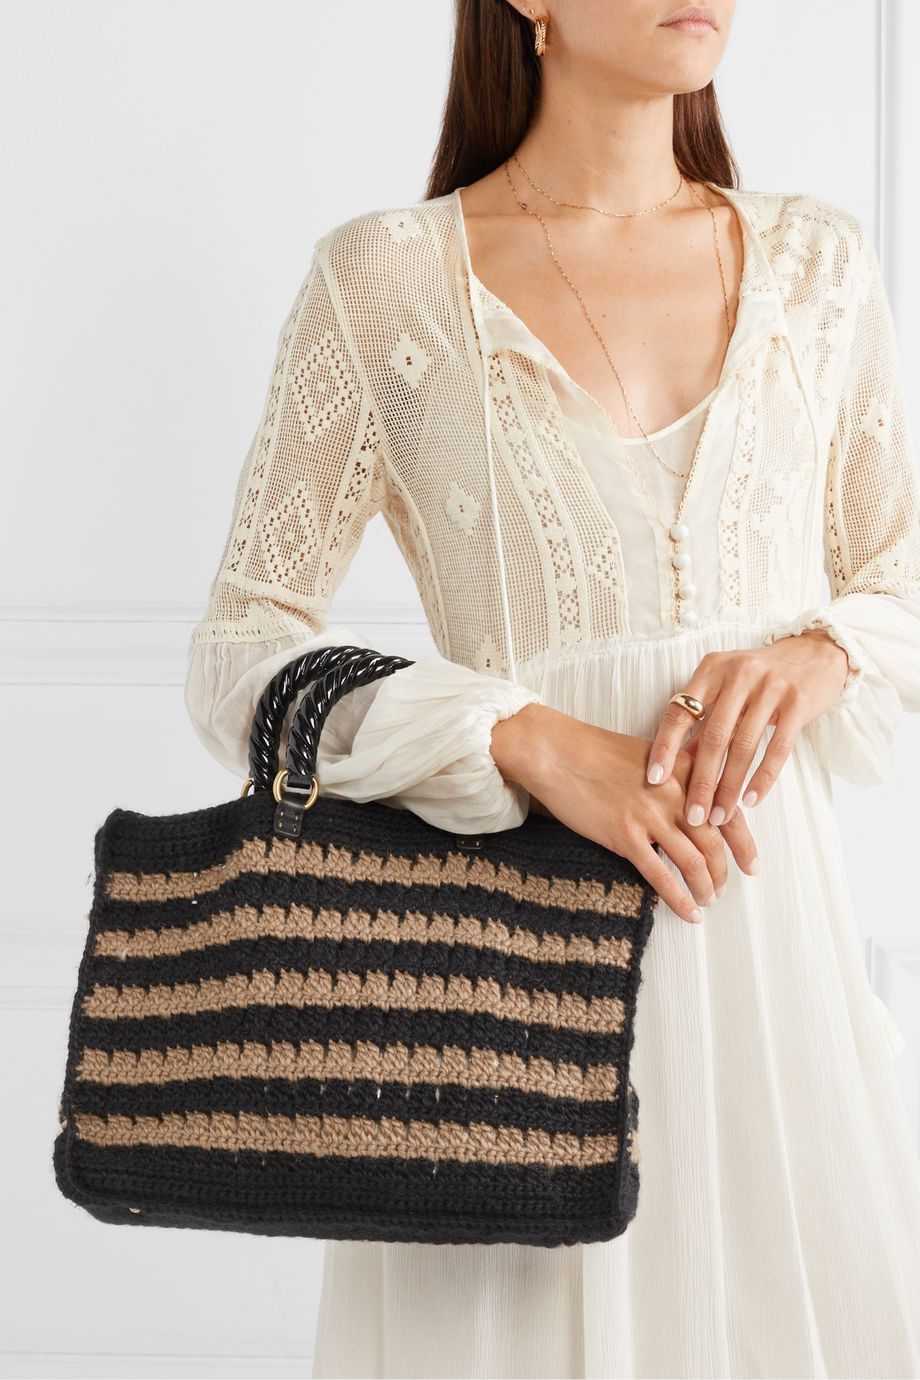 Mehry Mu Lucia striped knitted tote